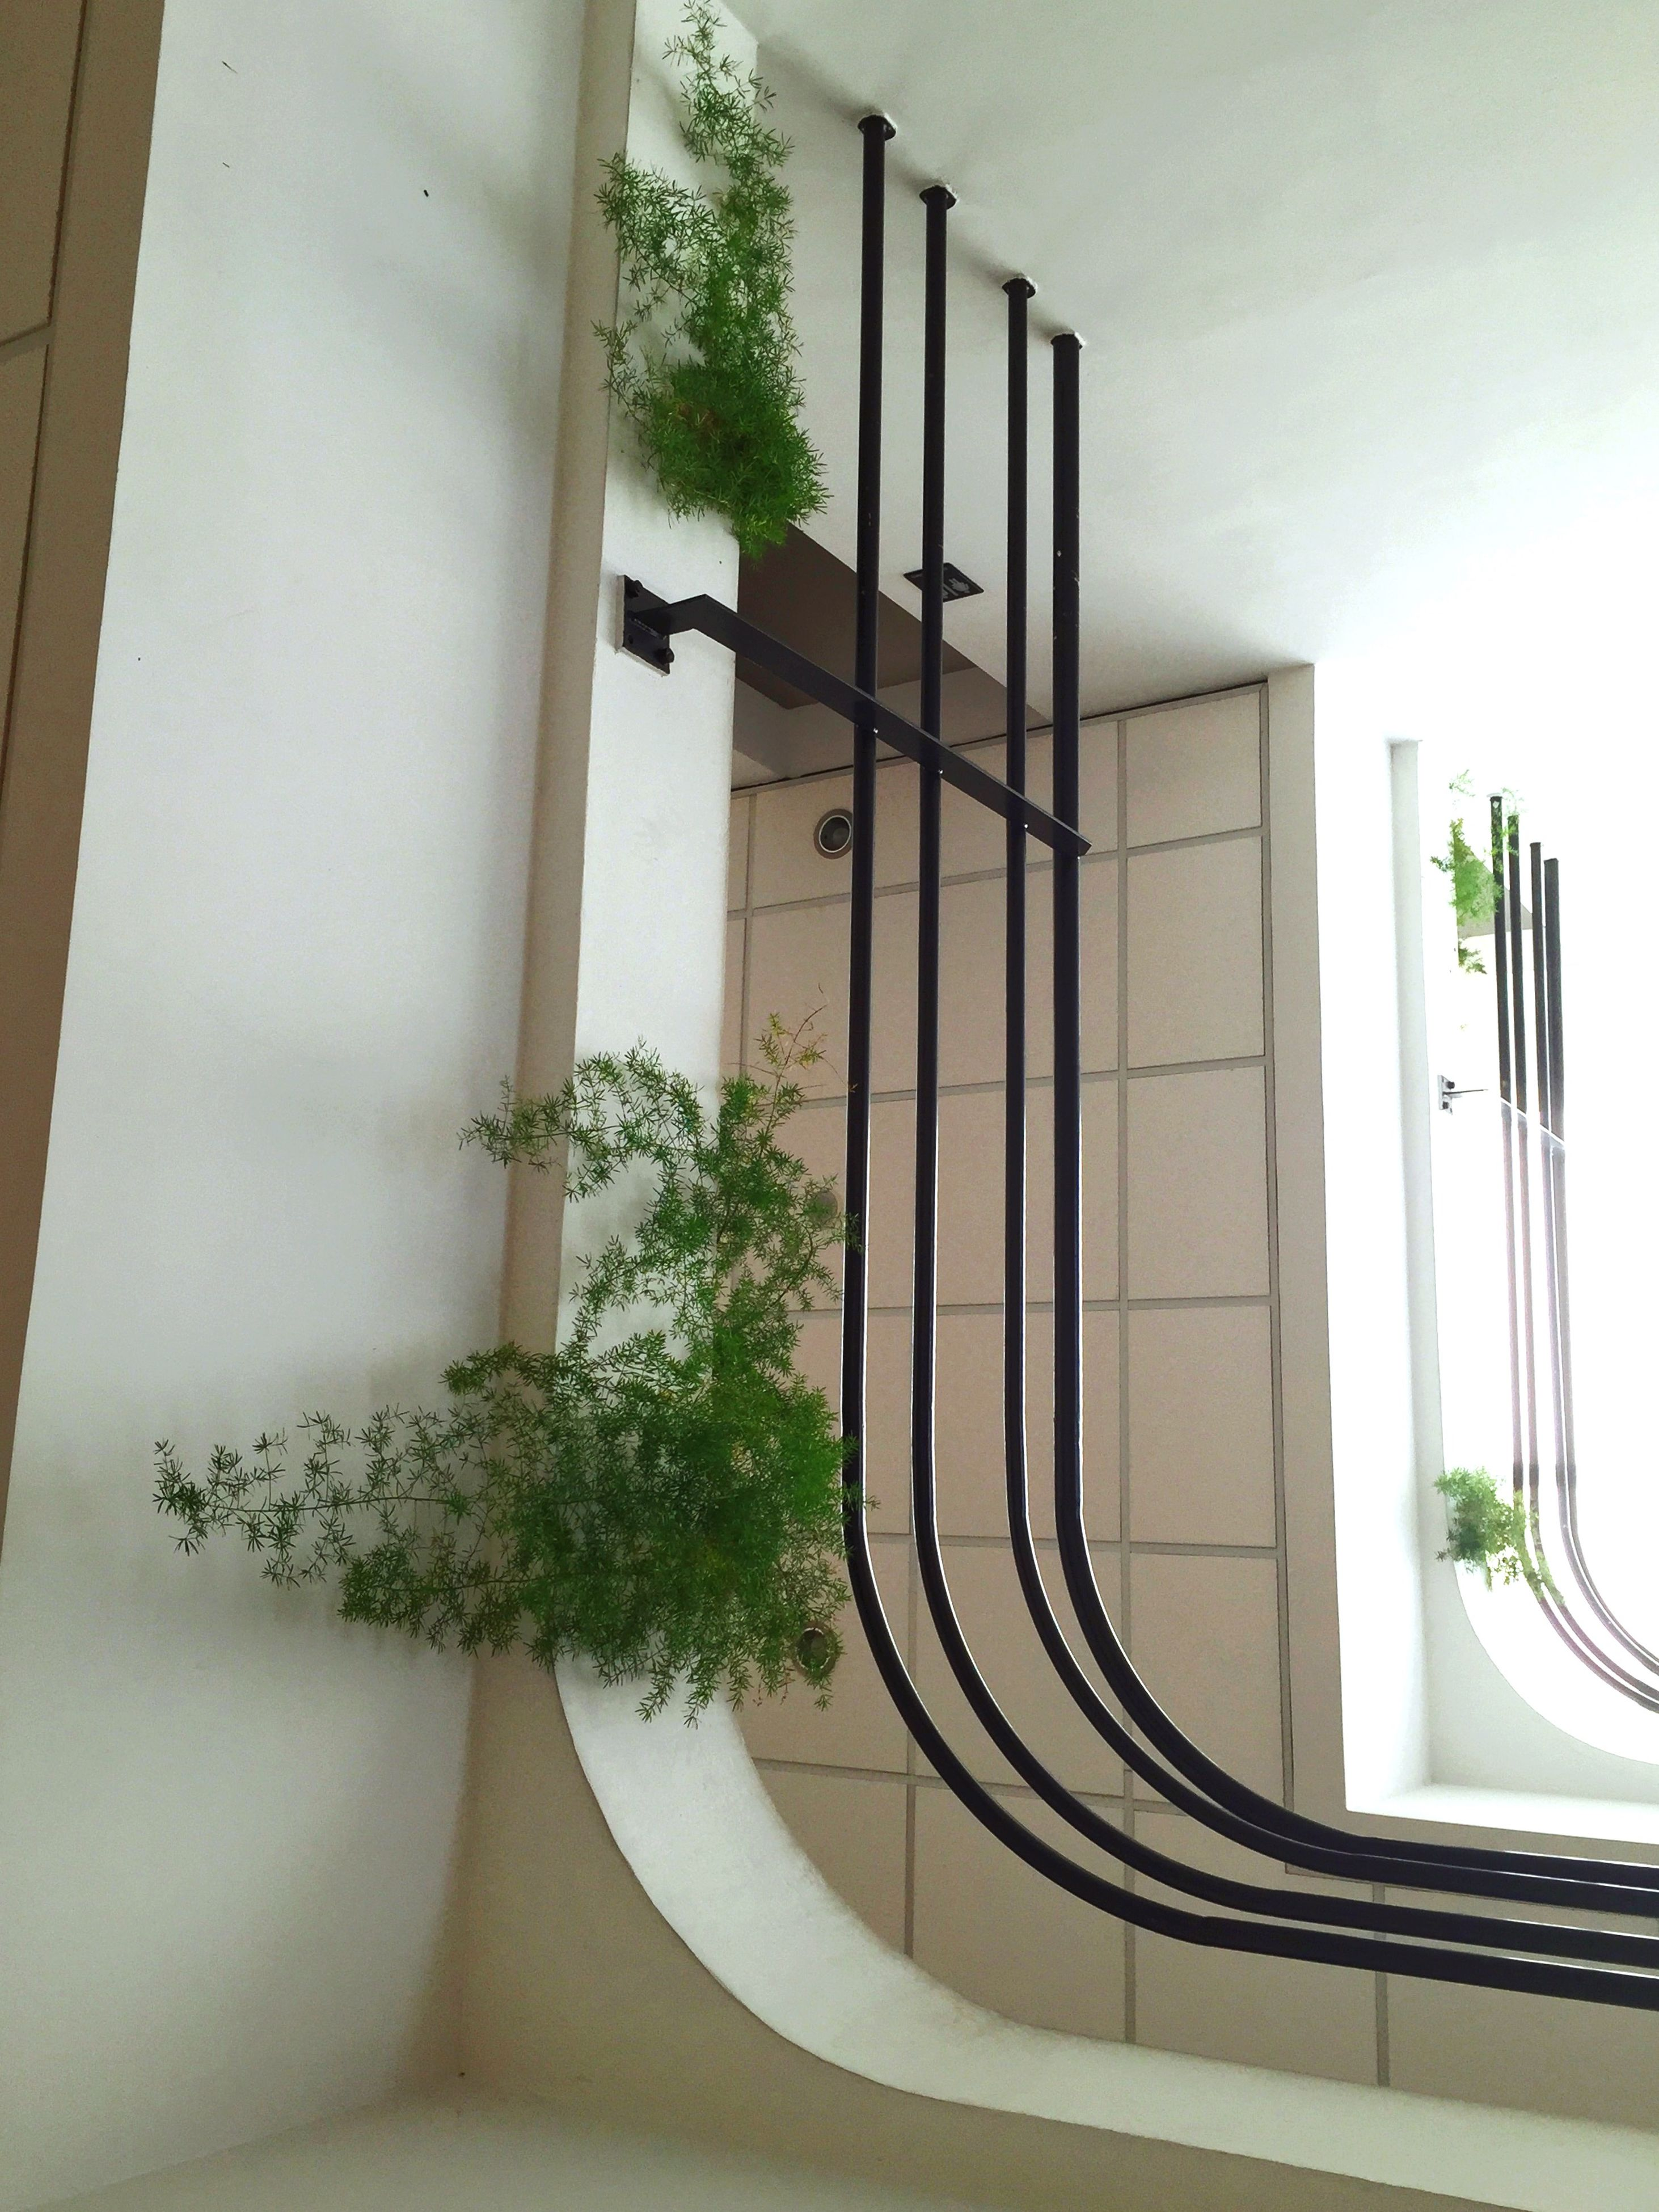 architecture, built structure, indoors, railing, growth, building exterior, plant, potted plant, low angle view, steps, building, window, staircase, steps and staircases, no people, wall - building feature, day, house, balcony, sunlight